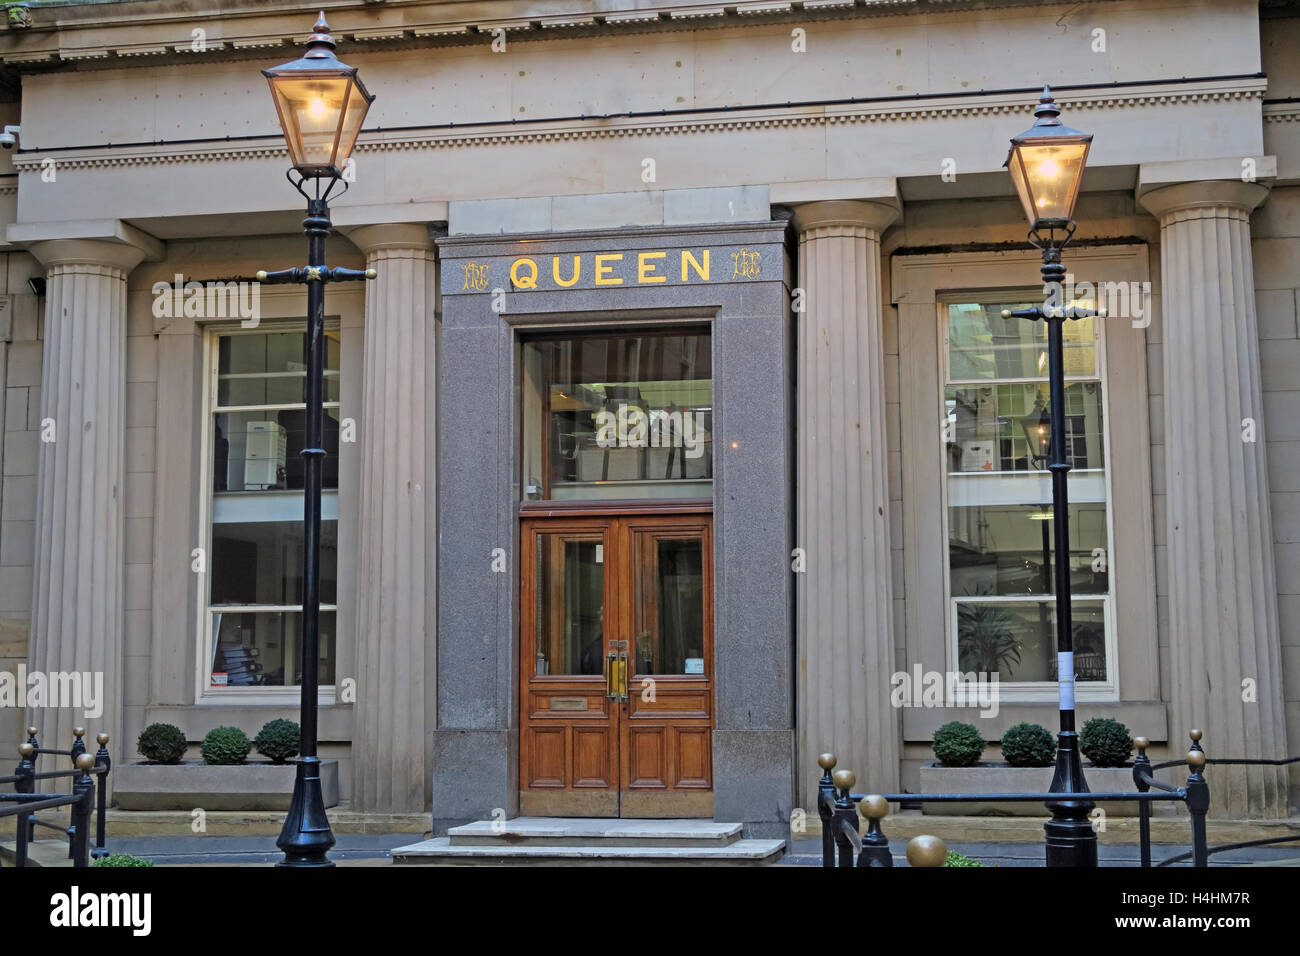 Queen Insurance Buildings,Queen avenue,Castle St,Liverpool,England,UK - Stock Image